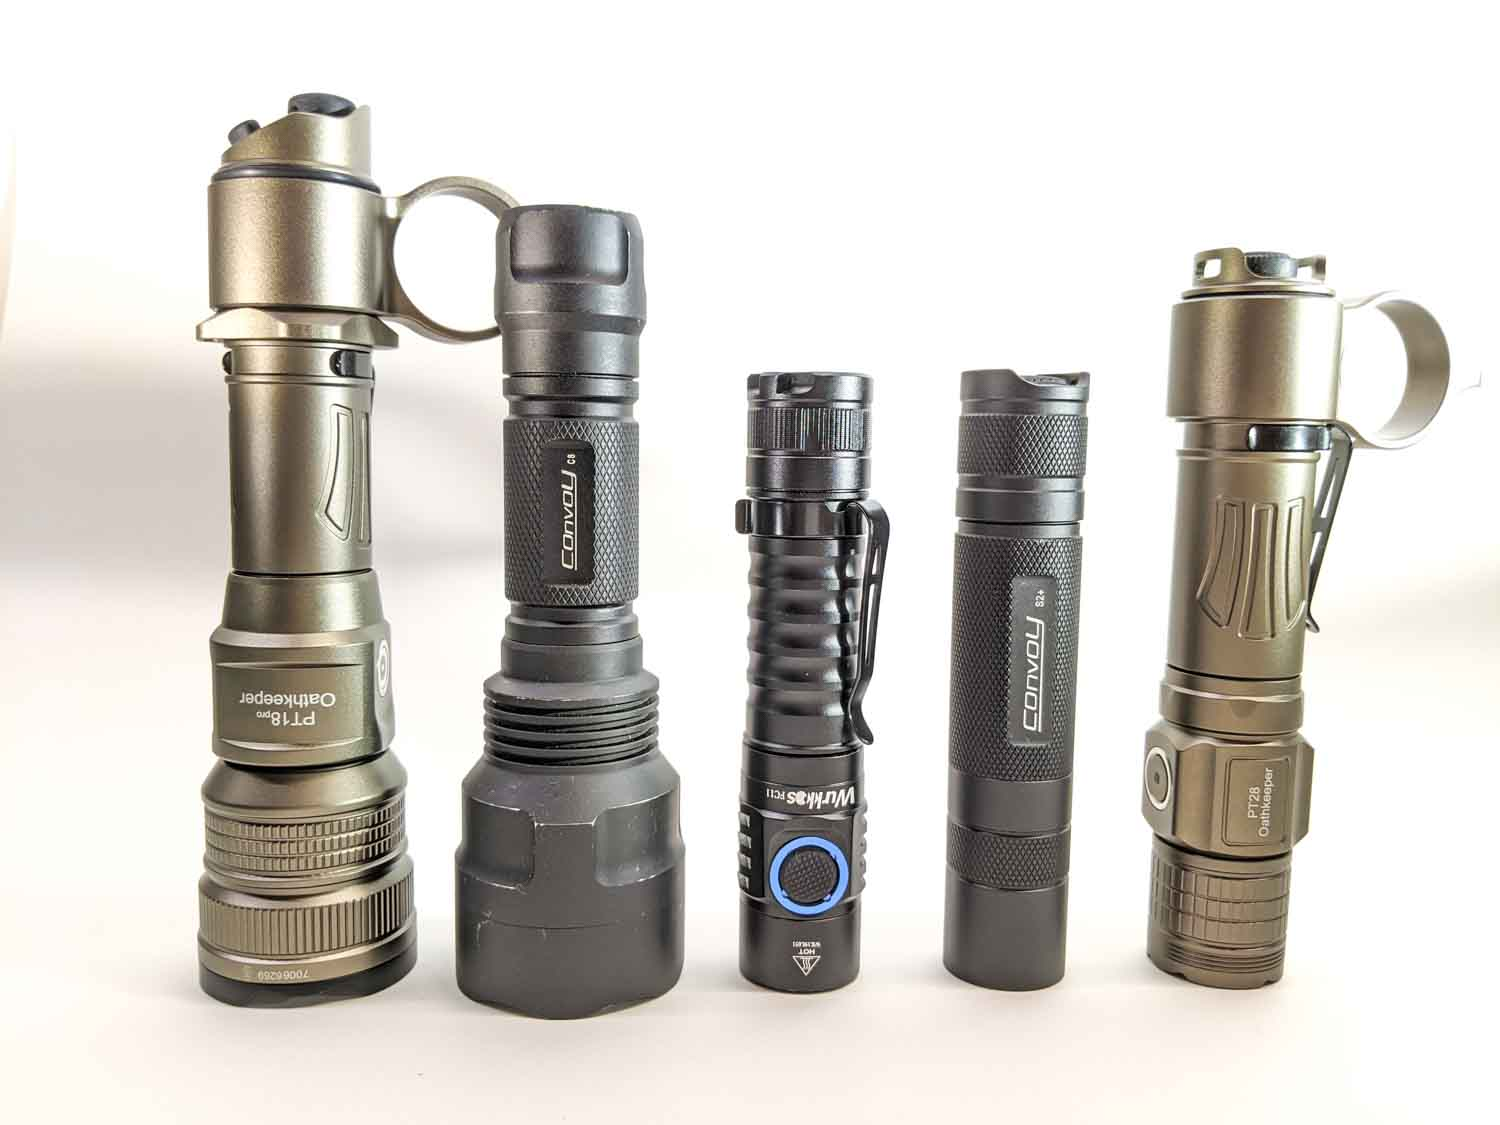 5 well known flashlights